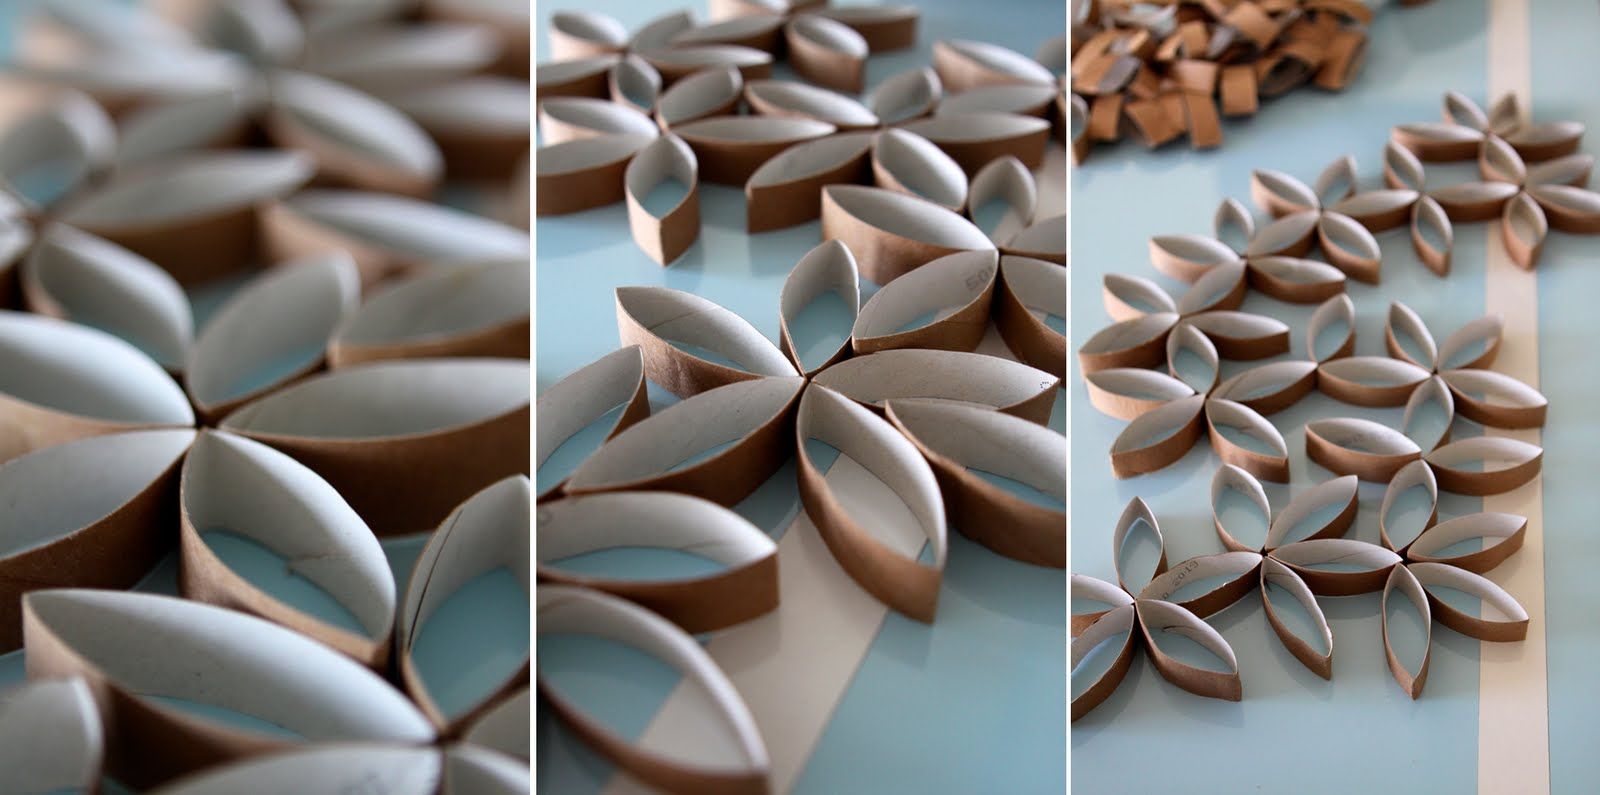 Flower Wall Art Made of Toilet Paper Rolls